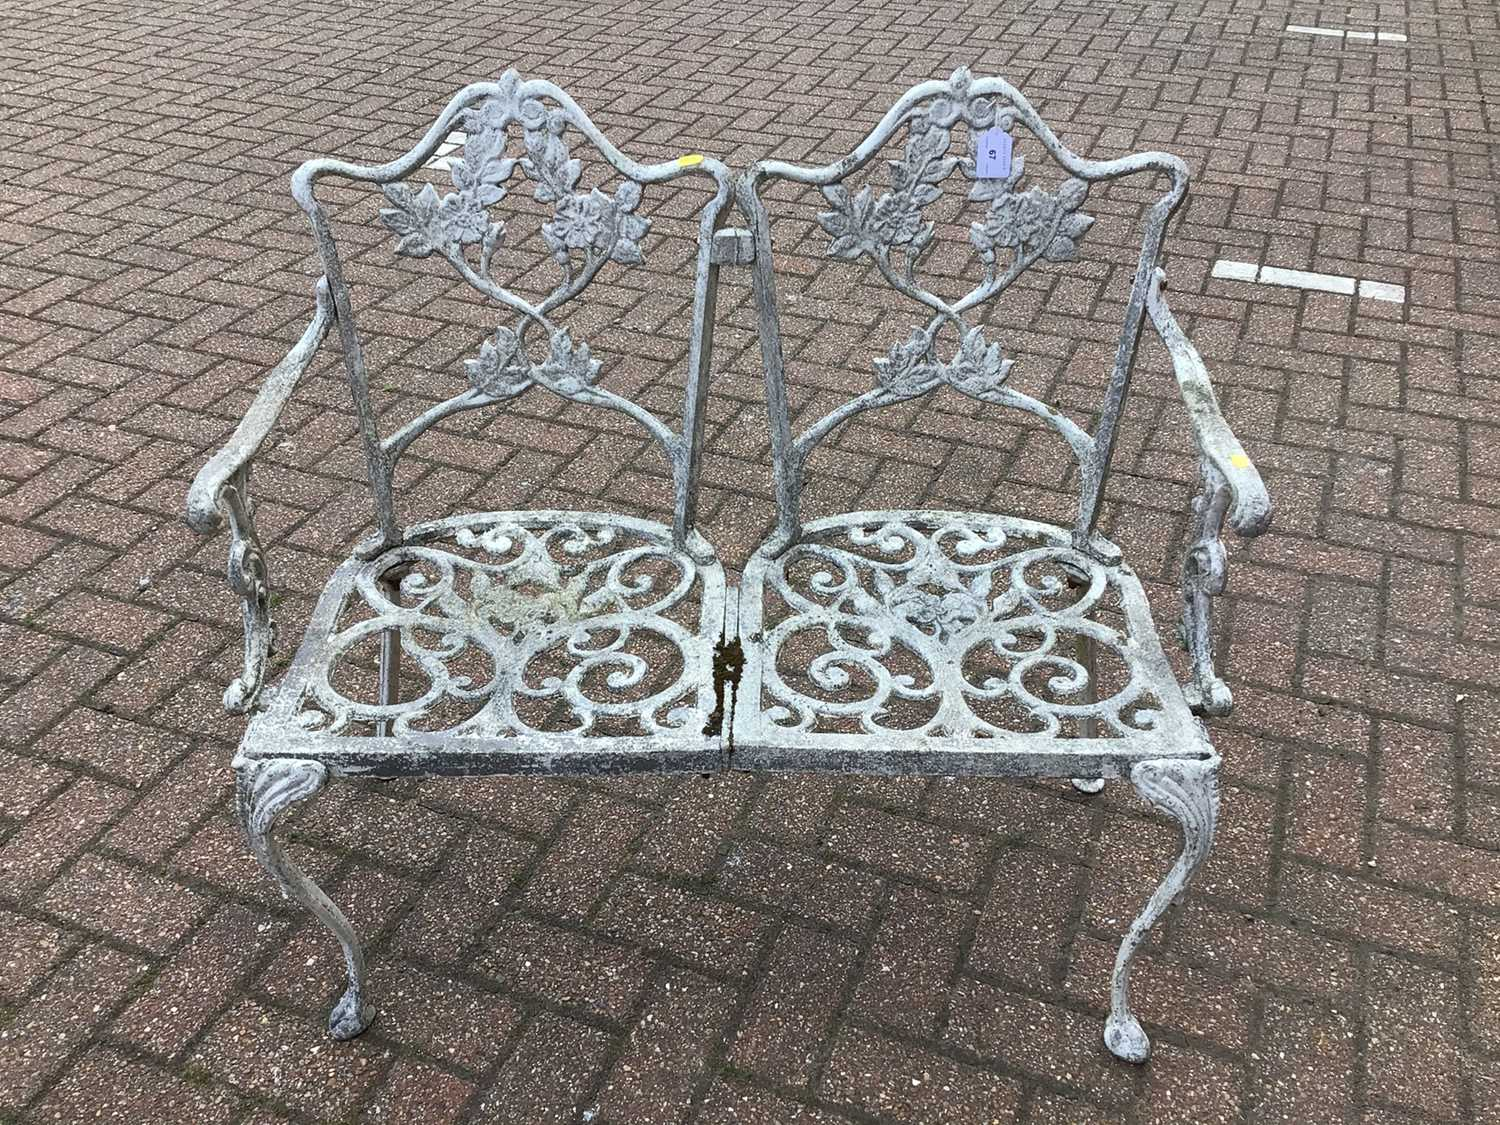 Aluminium two seater garden bench 91cm wide x 84cm high with a revolving office chair